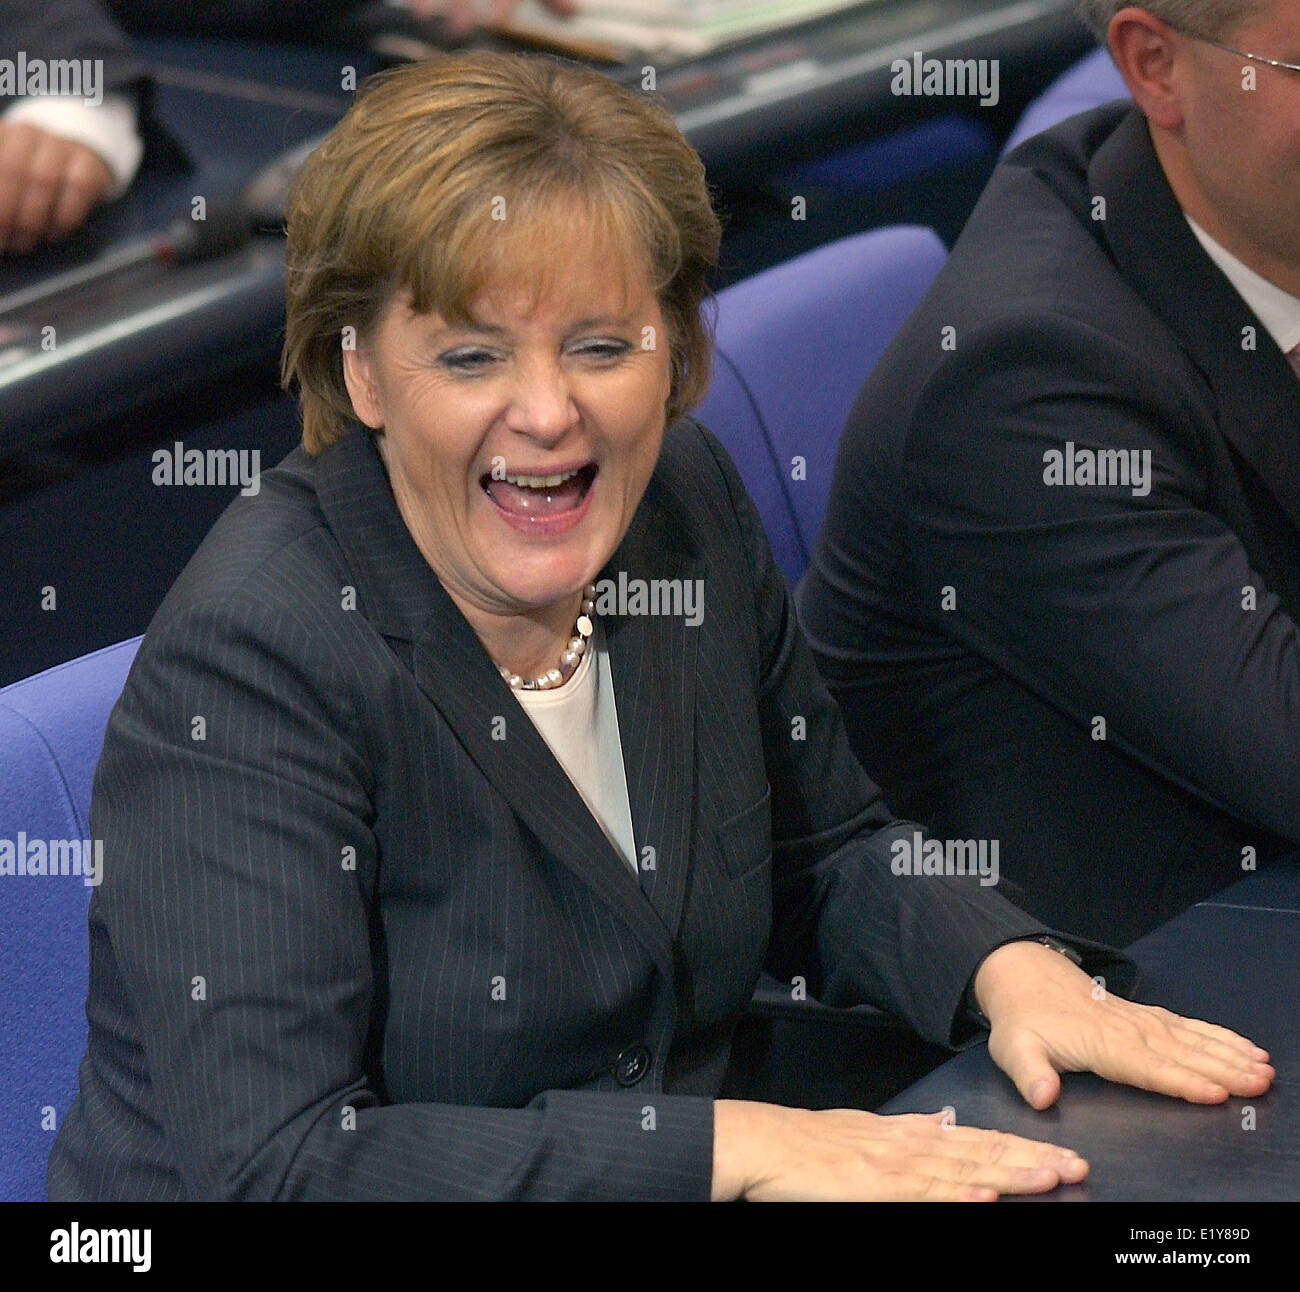 Chancellor and CDU chairwoman Angela Merkel laughs out loudly on the occasion of Norber Lammert's slip of tongue - Stock Image